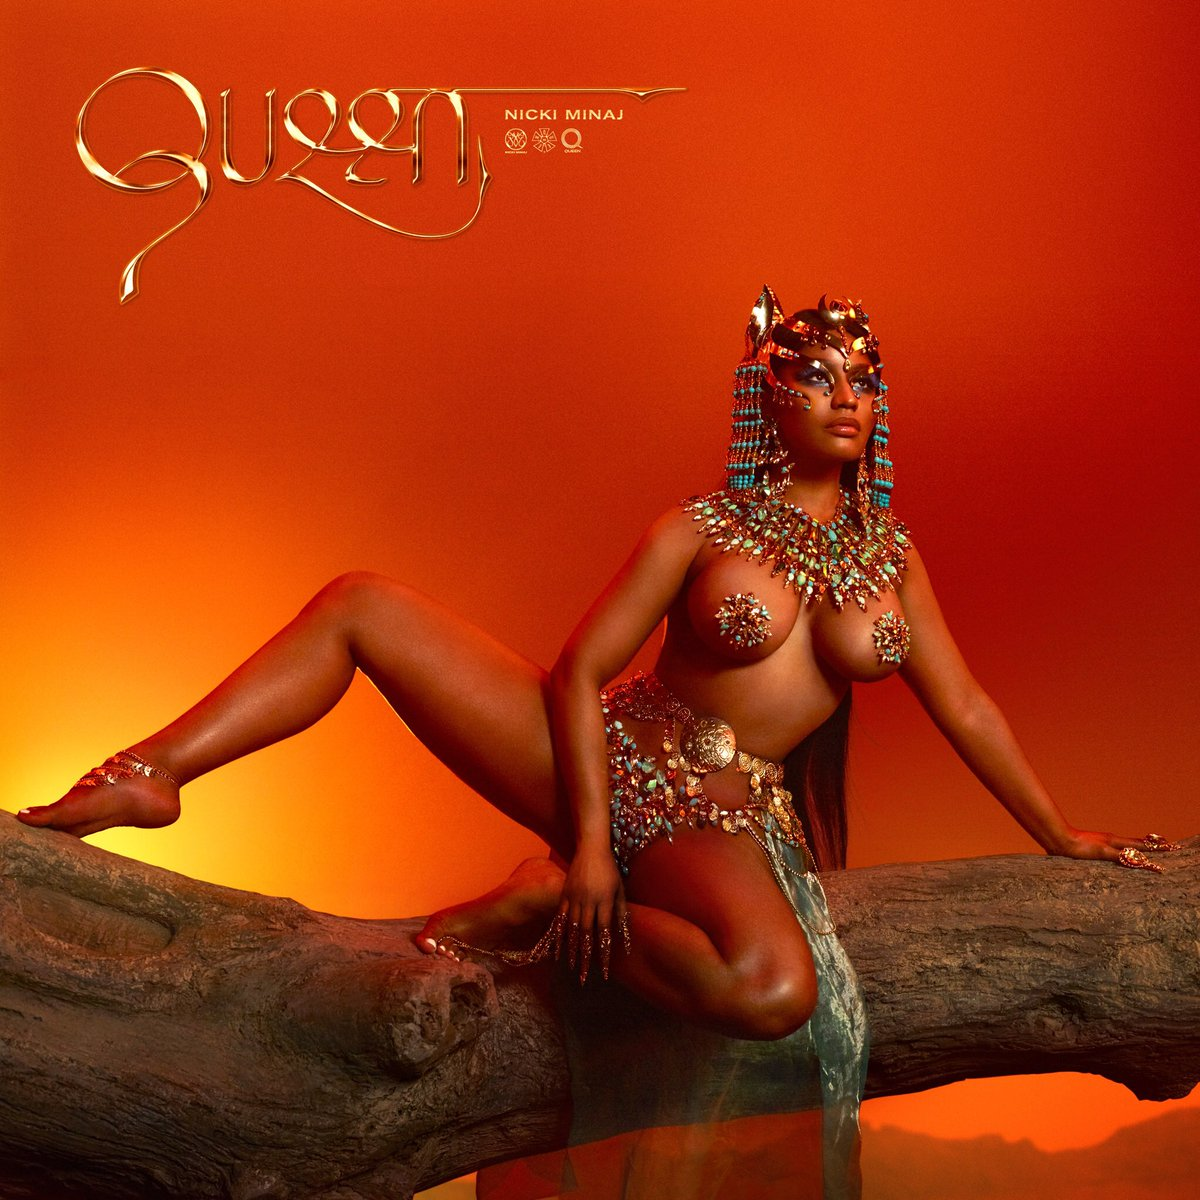 Download Queen nicki minaj